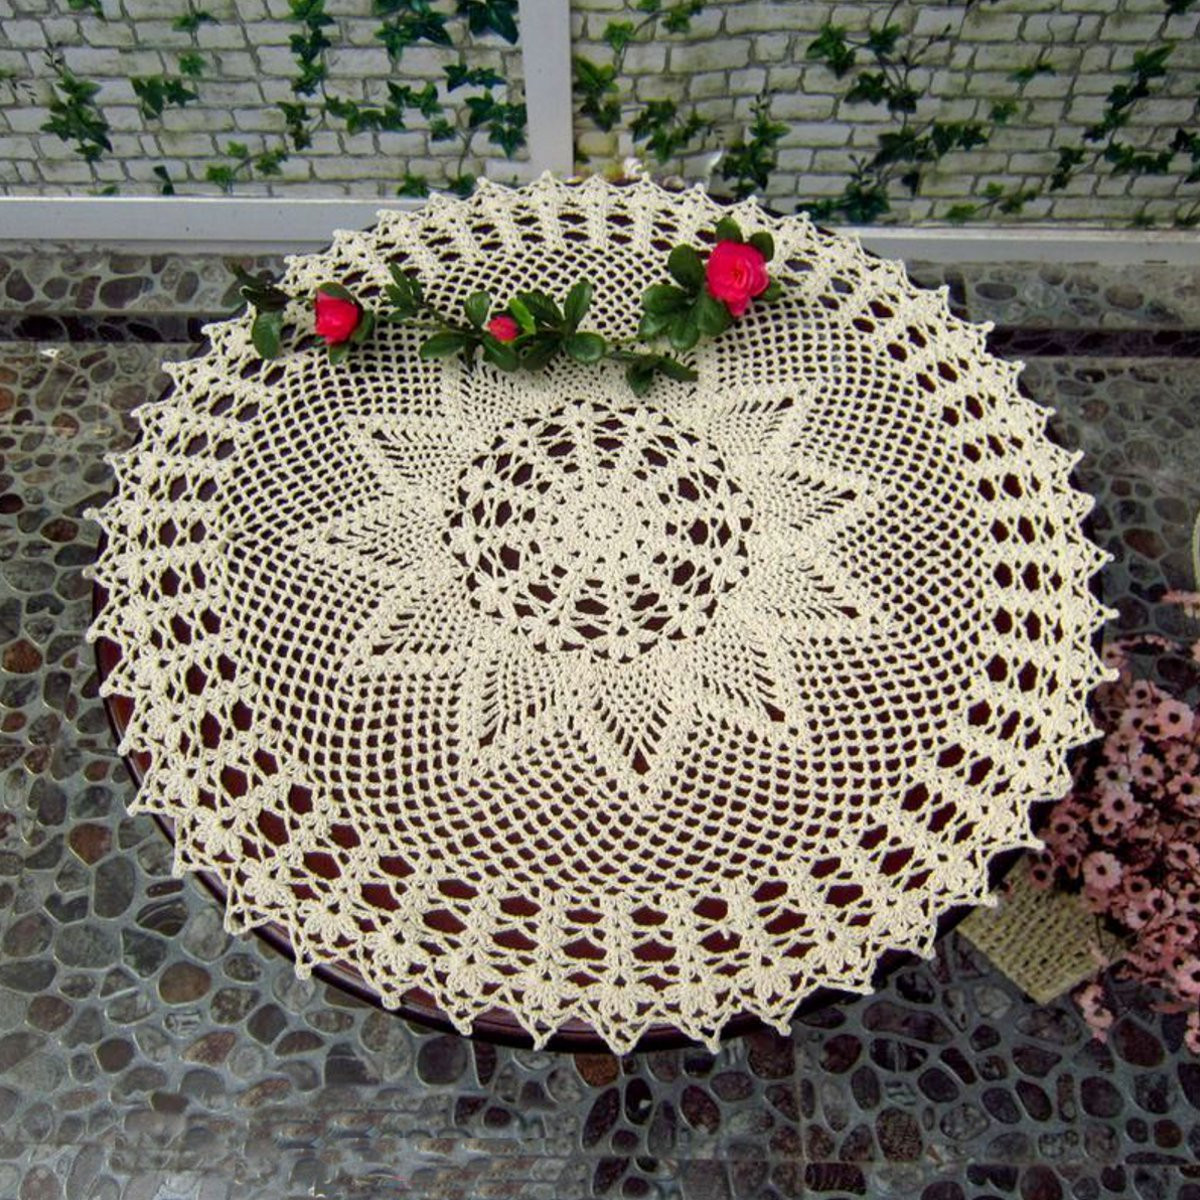 Meigar 20'' Handmade Crochet Doilies Lace Flower Tablecloth Cotton Sofa Doily Placemats Table Cover Mat Coasters Home Decor,Round